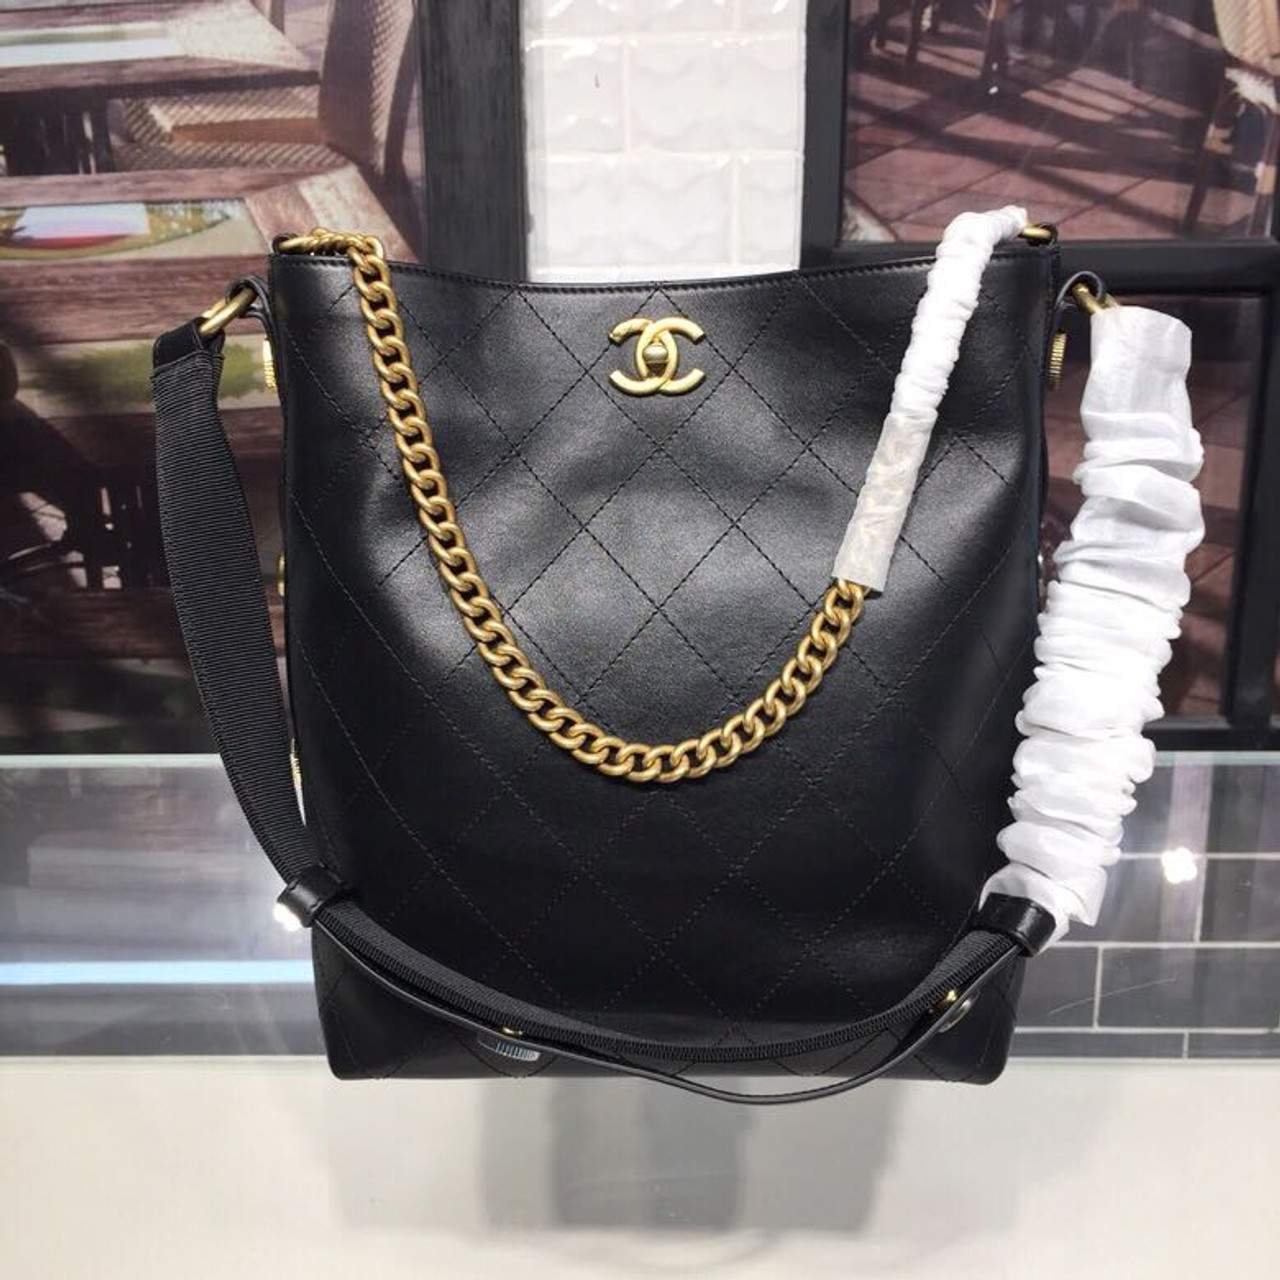 14ea35eb4b47 Chanel Button Up Hobo Bag 26cm Calfskin Leather Fall/Winter 2018 Act 1  Collection,